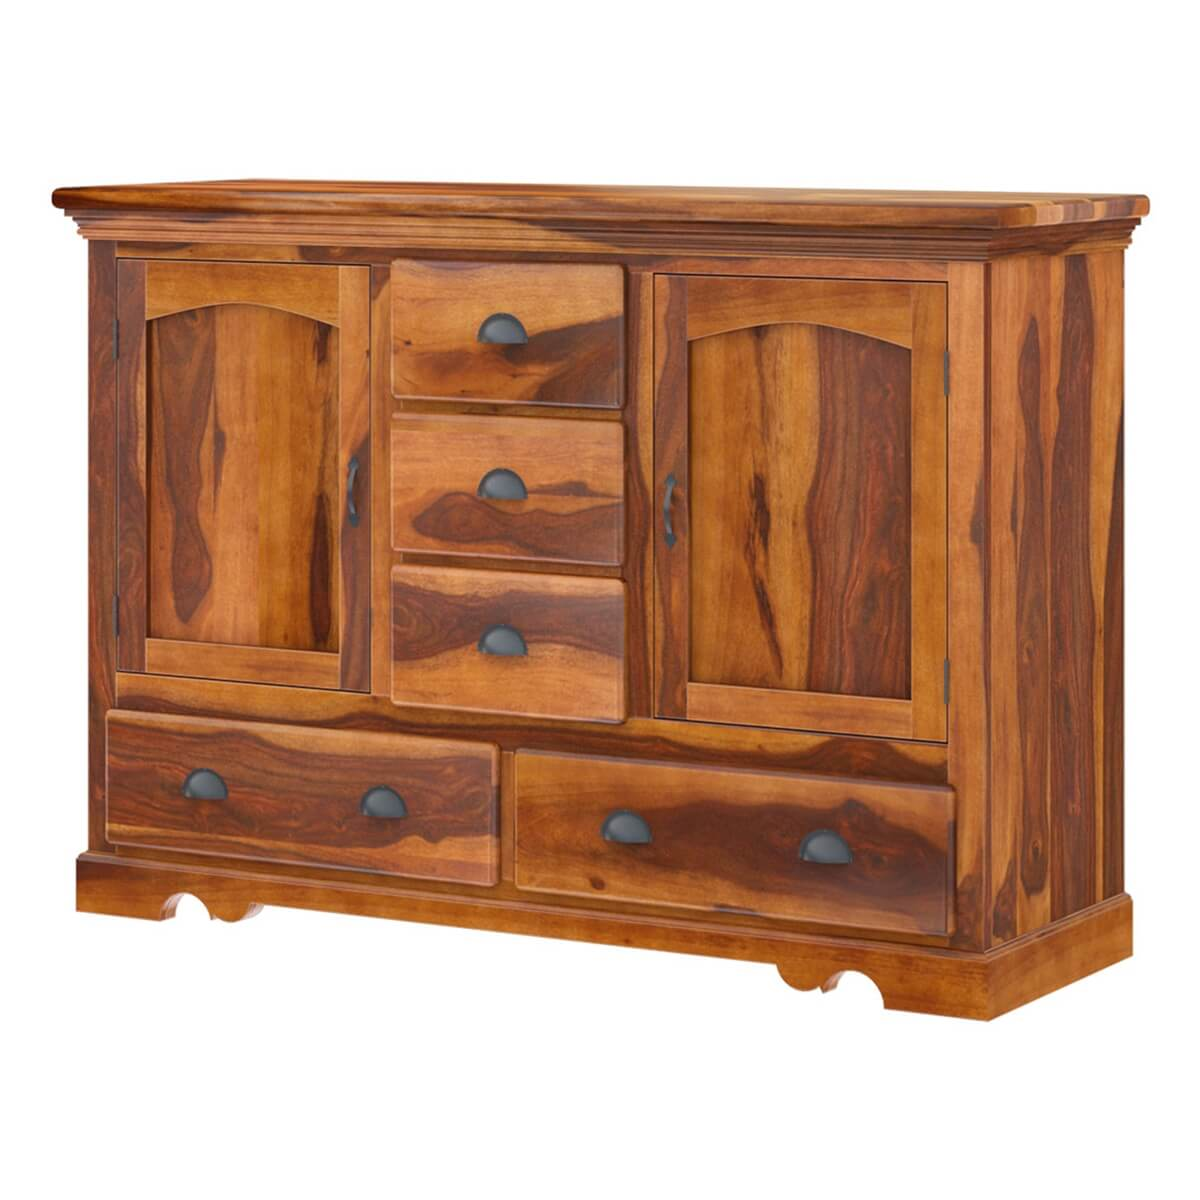 Rustic solid wood drawer traditional dining room buffet